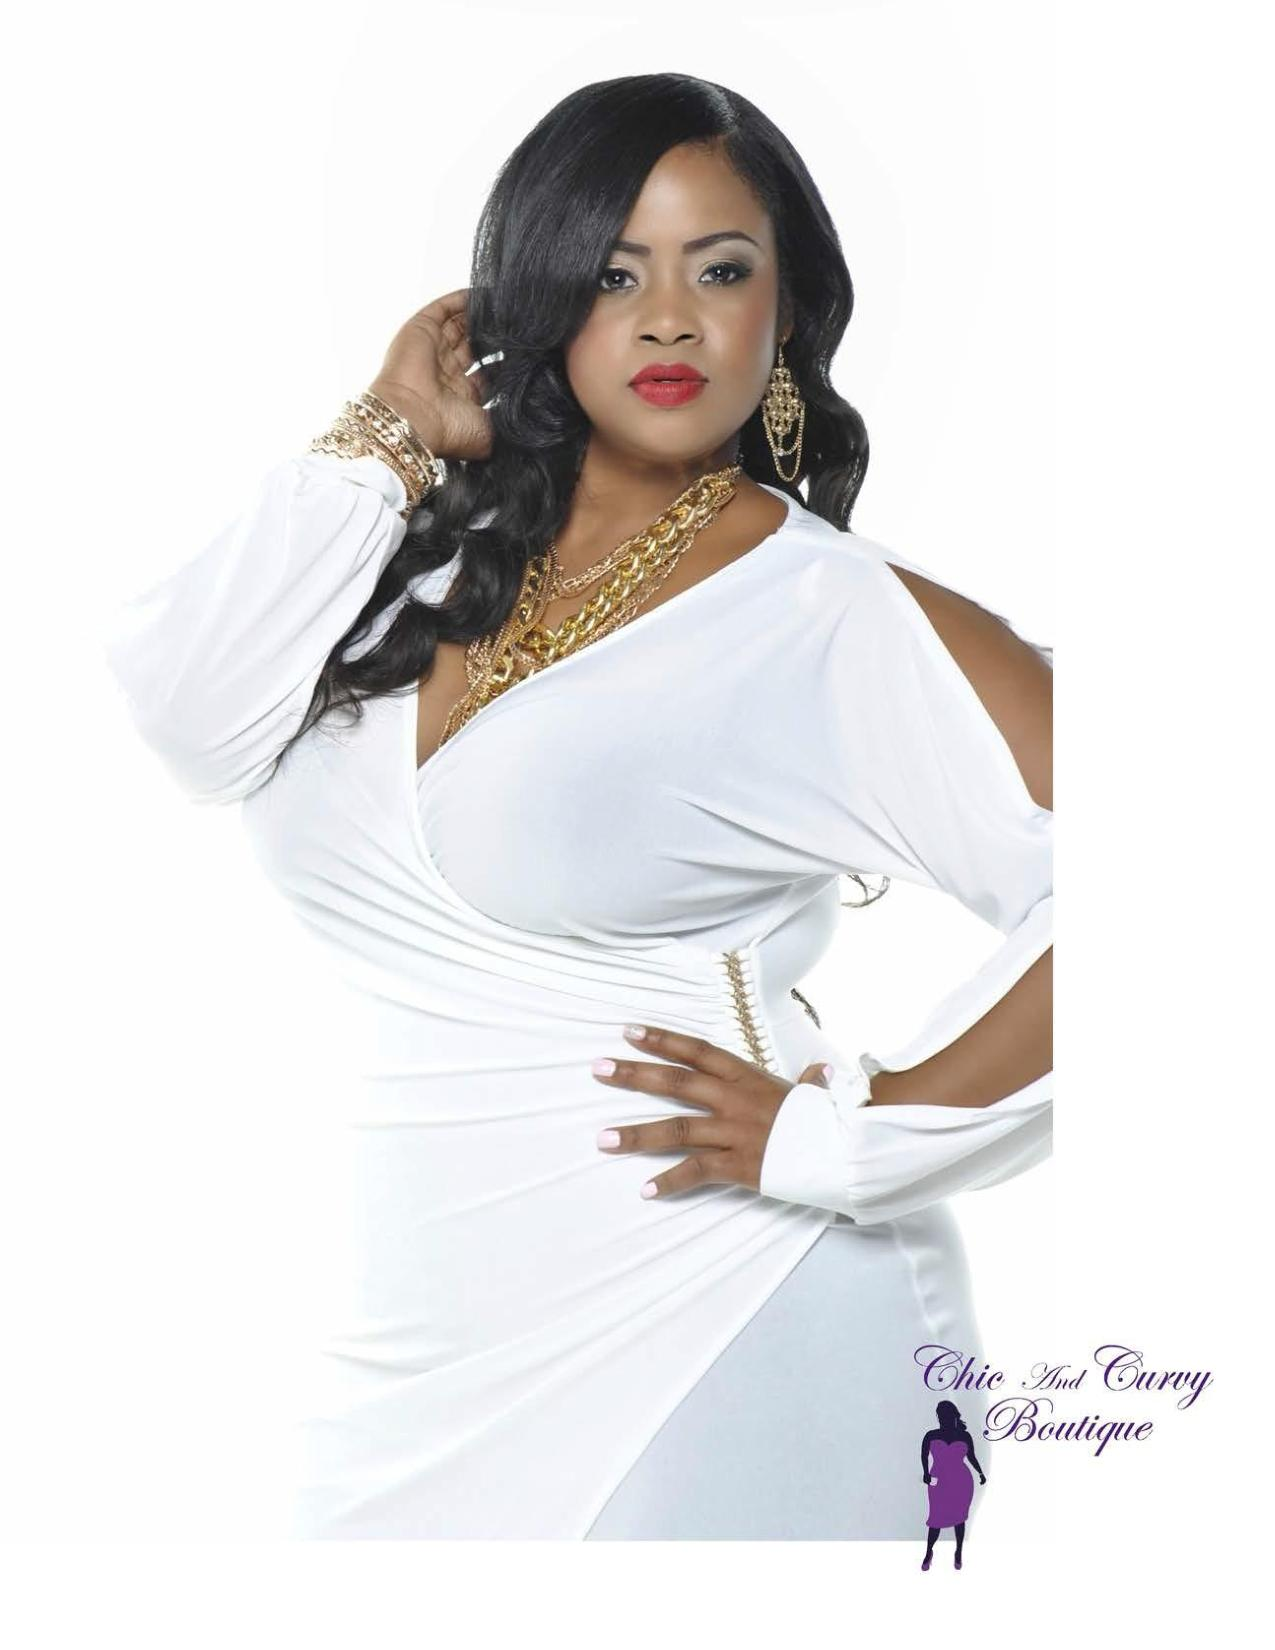 The Chic Curve Seattle Fashion: The Chic And Curvy Boutique Lookbook: Volume 1